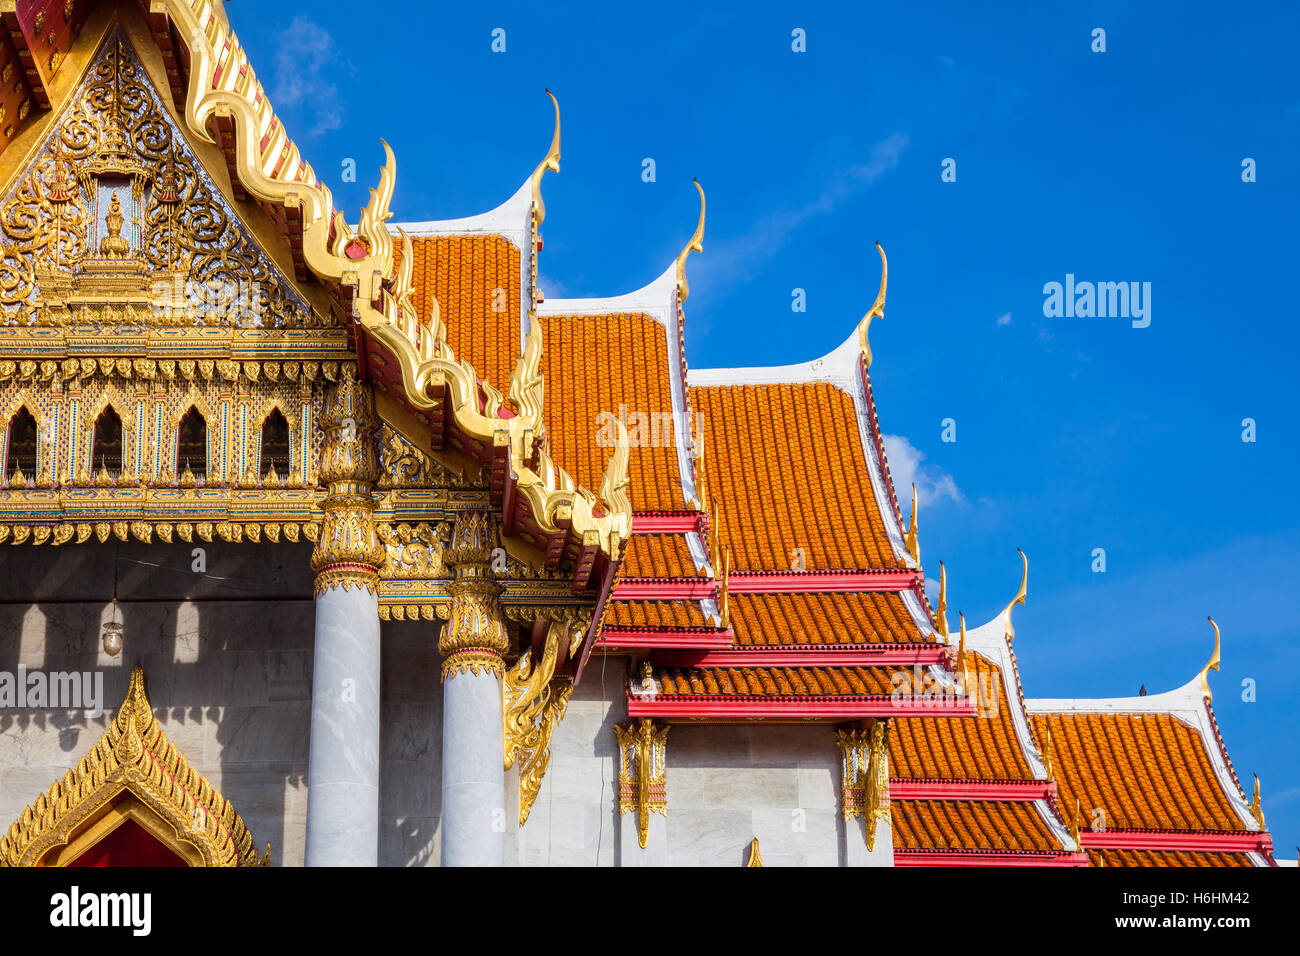 Wat Benchamabophit also known as Marble Temple at sunset in Bangkok, Thailand. - Stock Image